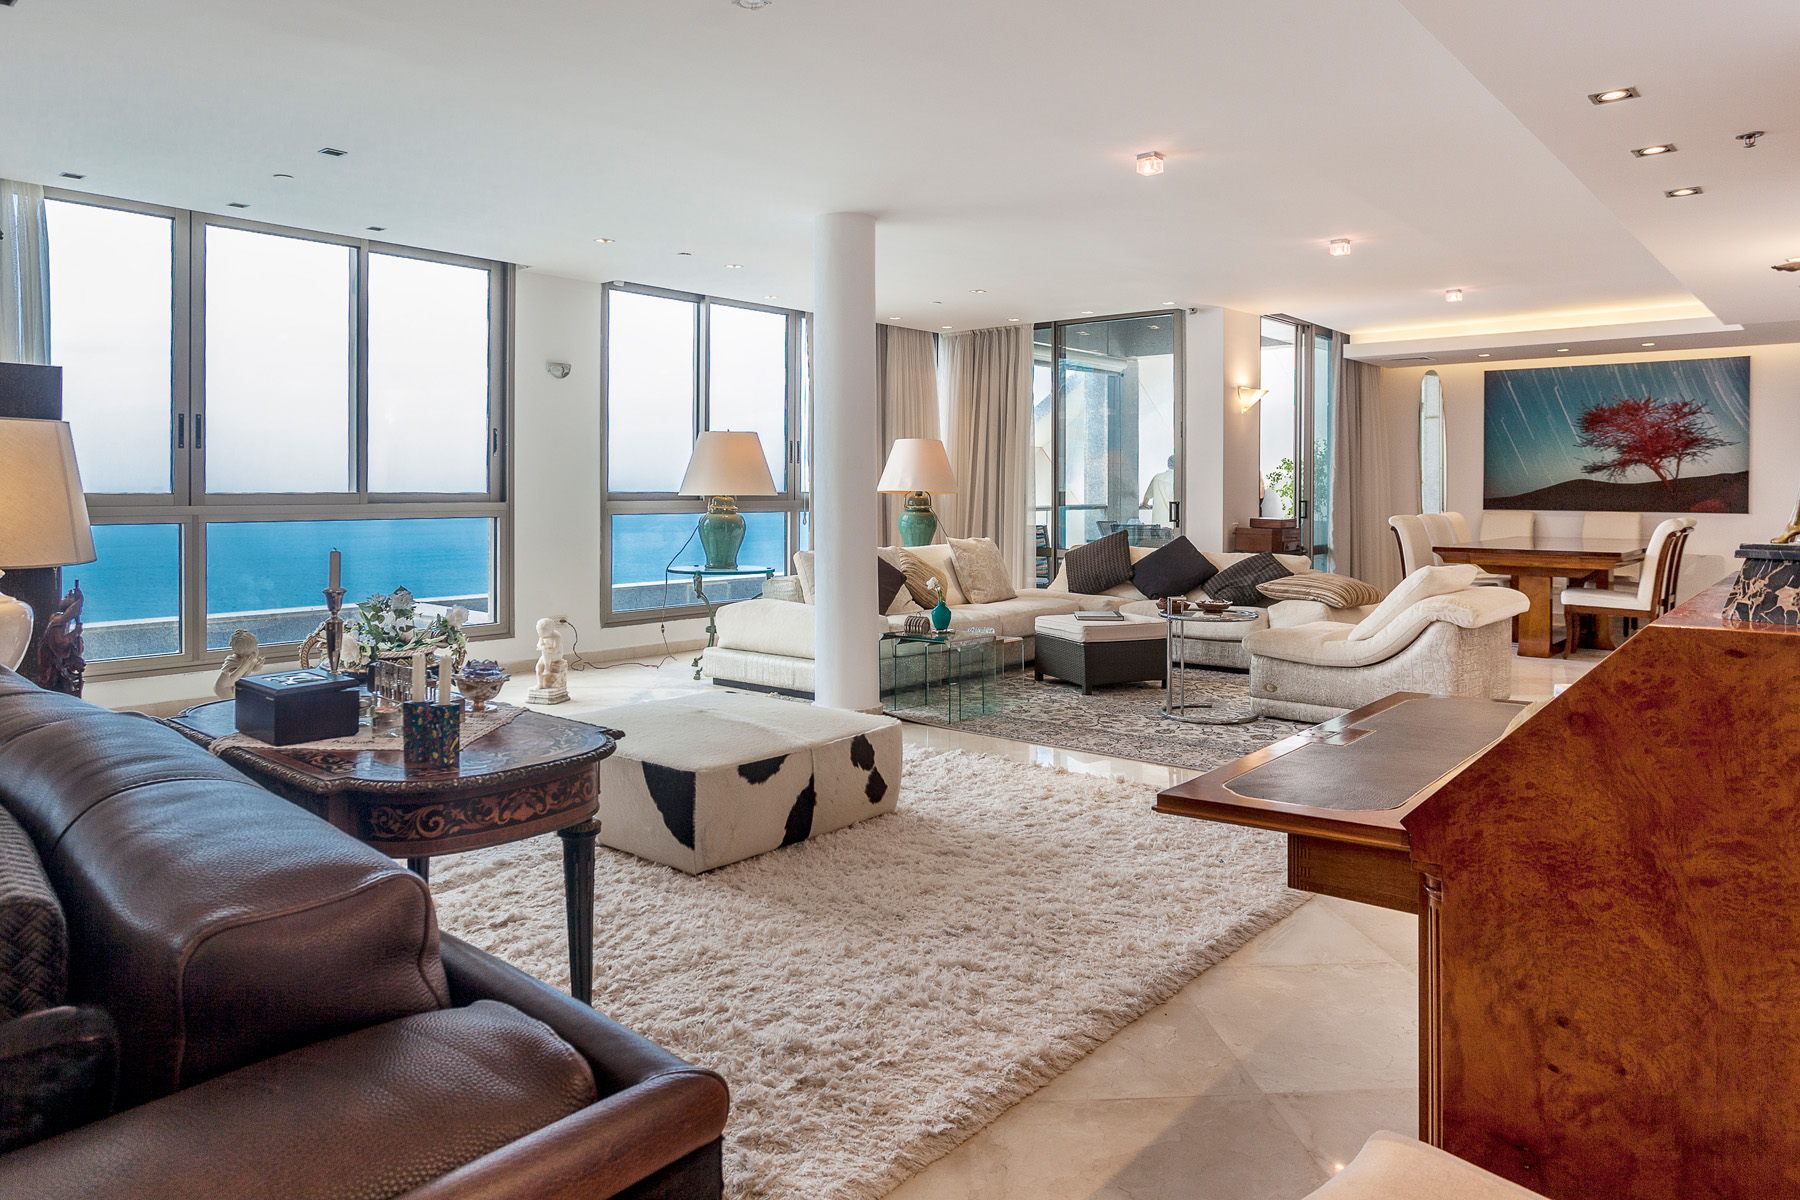 Duplex for Sale at Refined Seafront Duplex Apartment in Netanya Netanya, Israel Israel